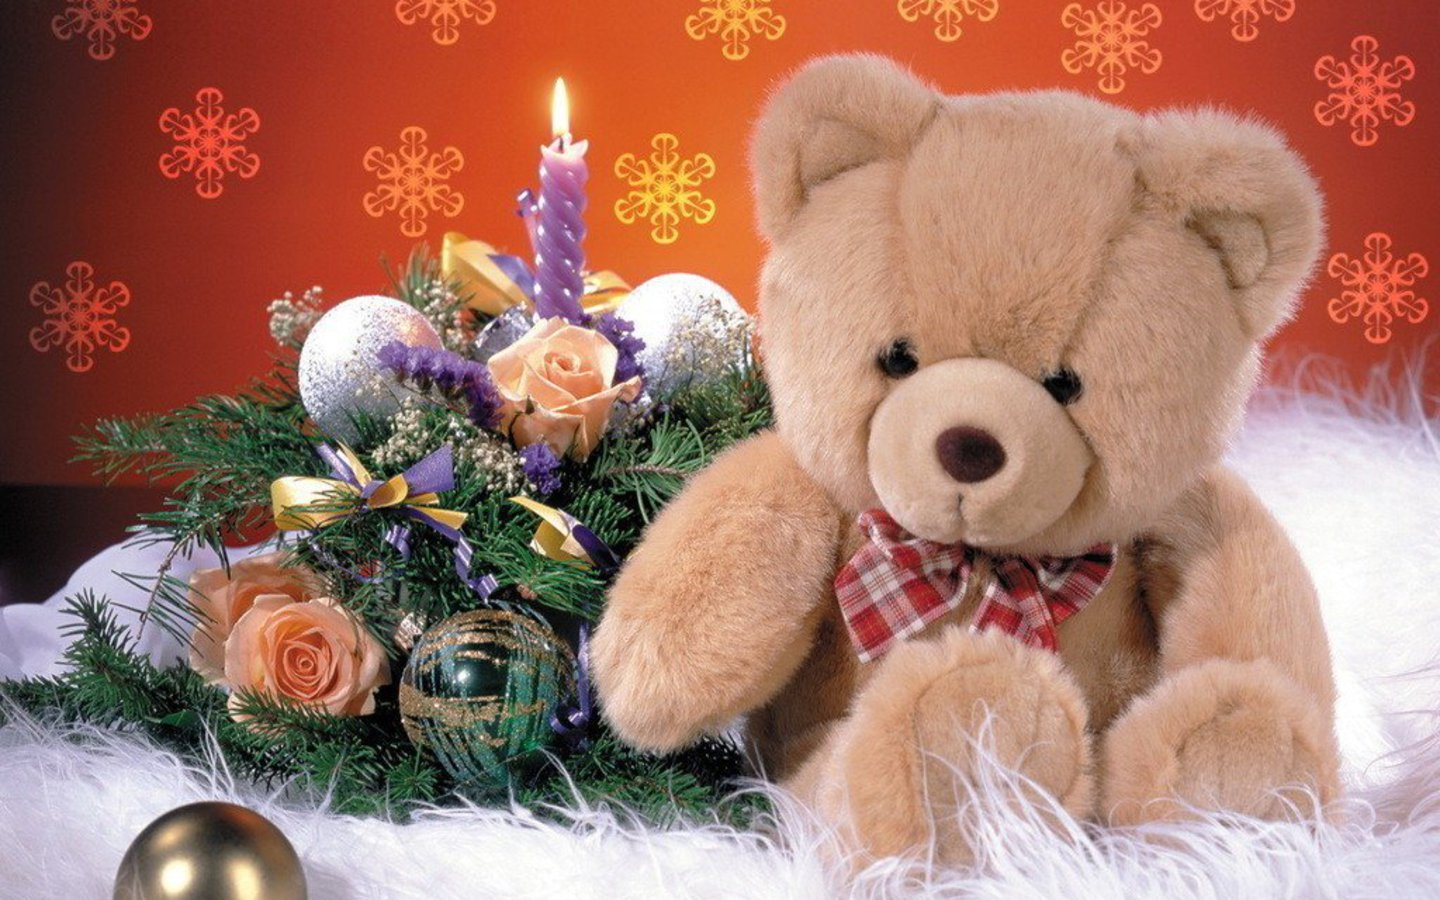 Wallpaper Cute Photos Wallpapers Of Cute Teddy Bears 1440x900